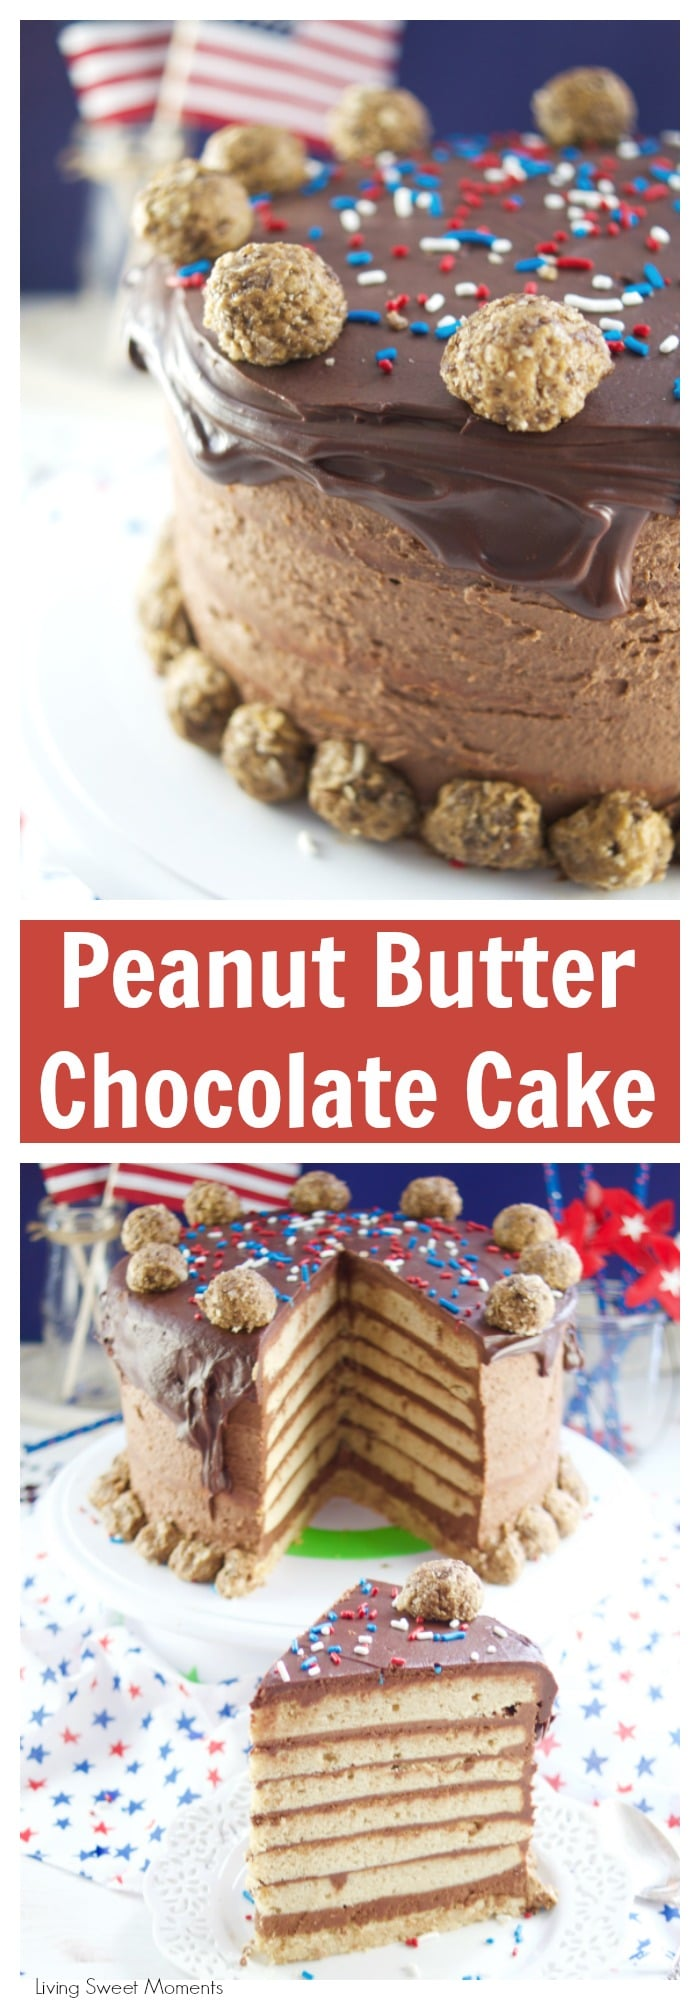 This colossal Peanut Butter Chocolate Cake recipe is made from scratch and is garnished with peanut butter truffles. The ultimate cake for celebrations. More amazing cake recipes at livingsweetmoments.com